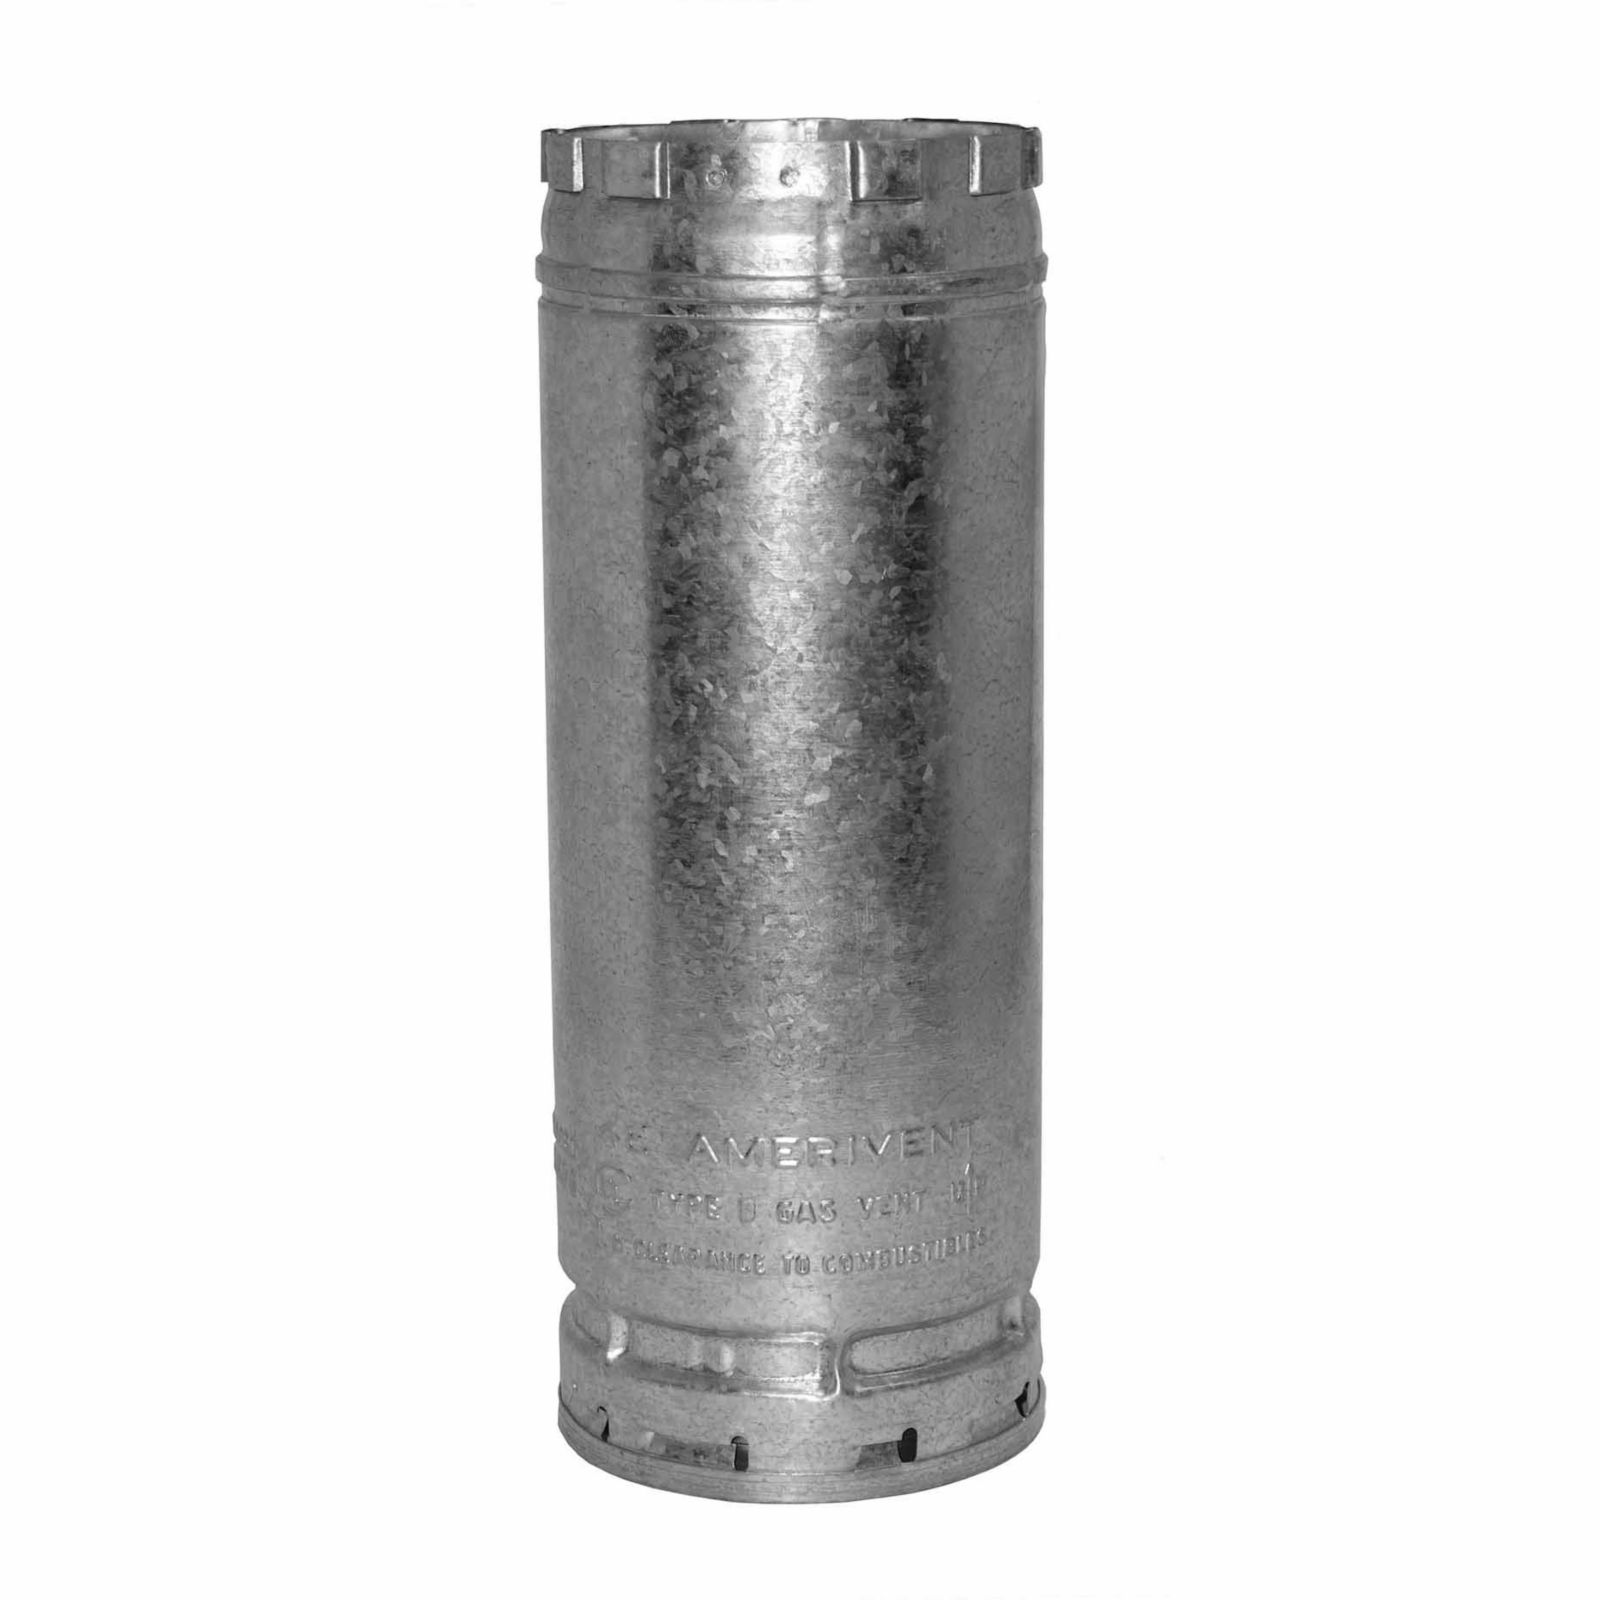 "AmeriVent 6E3 - Pipe Section Type B Gas Vent, 6"" Round X 36"" Length"